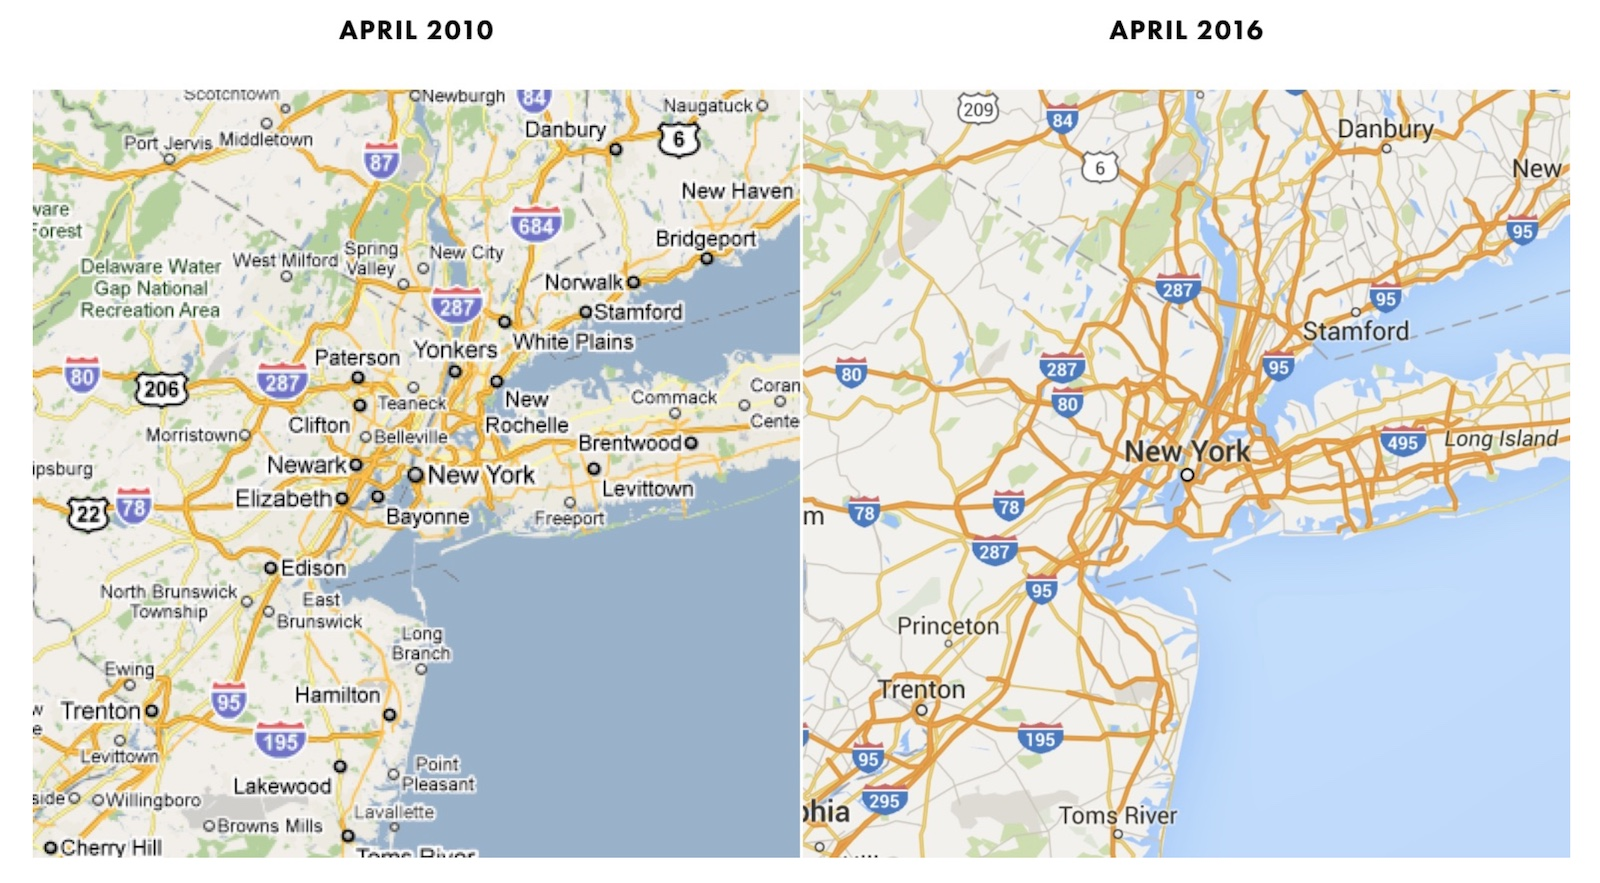 15 Years of Google Maps Website Design History - 48 Images